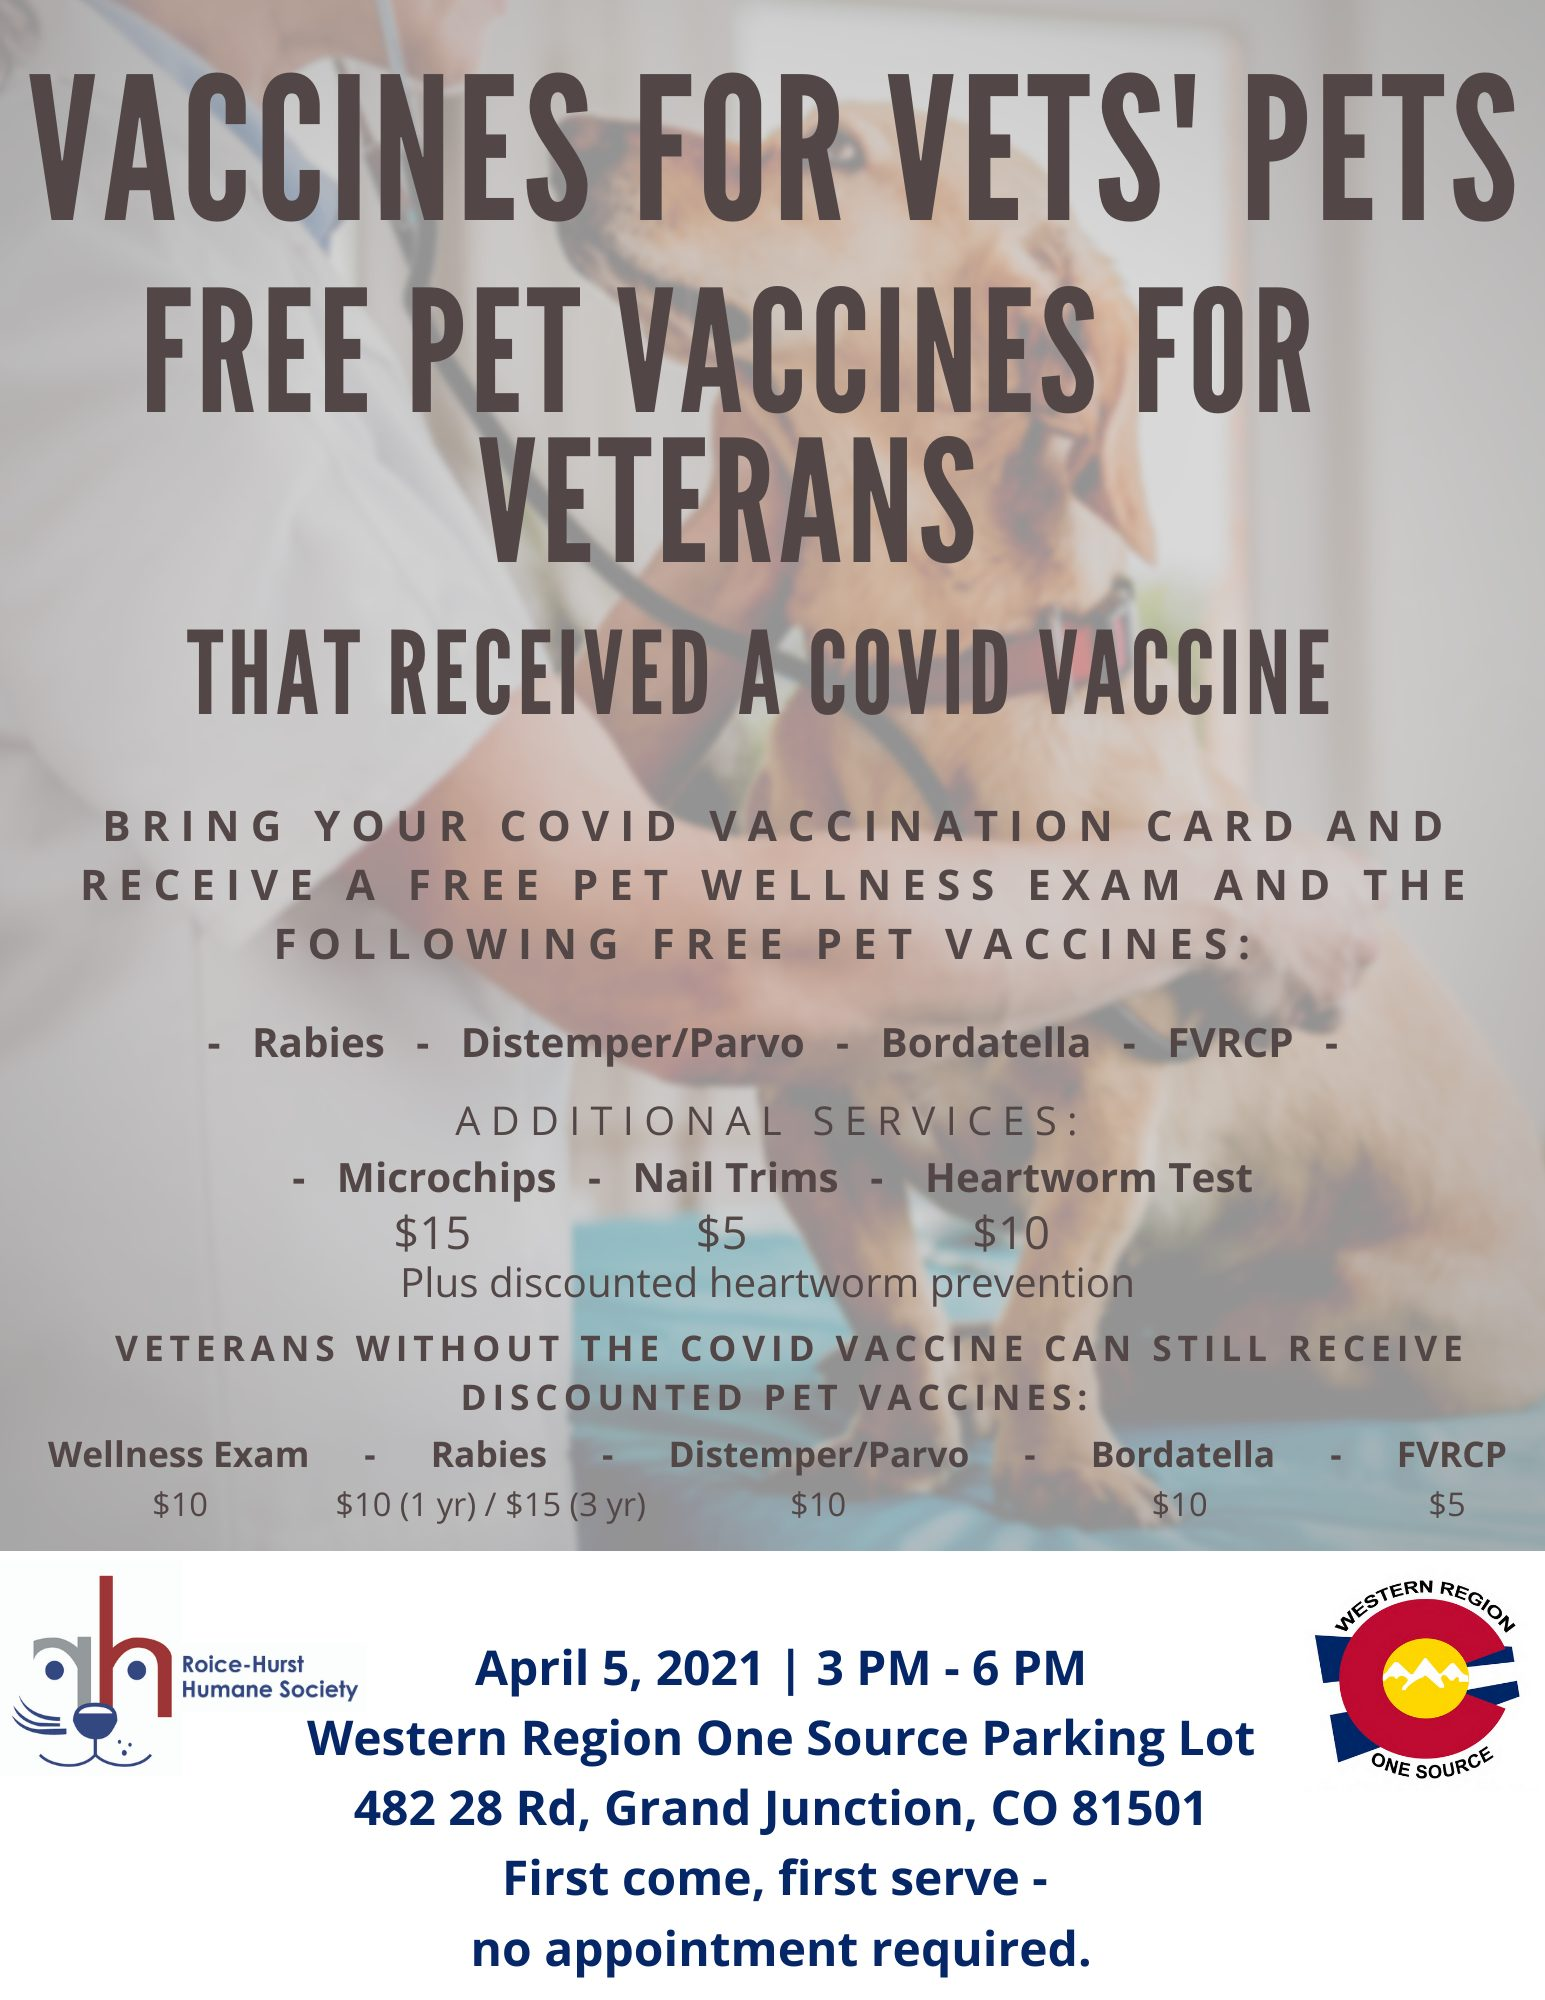 Vaccines For Vets' Pets